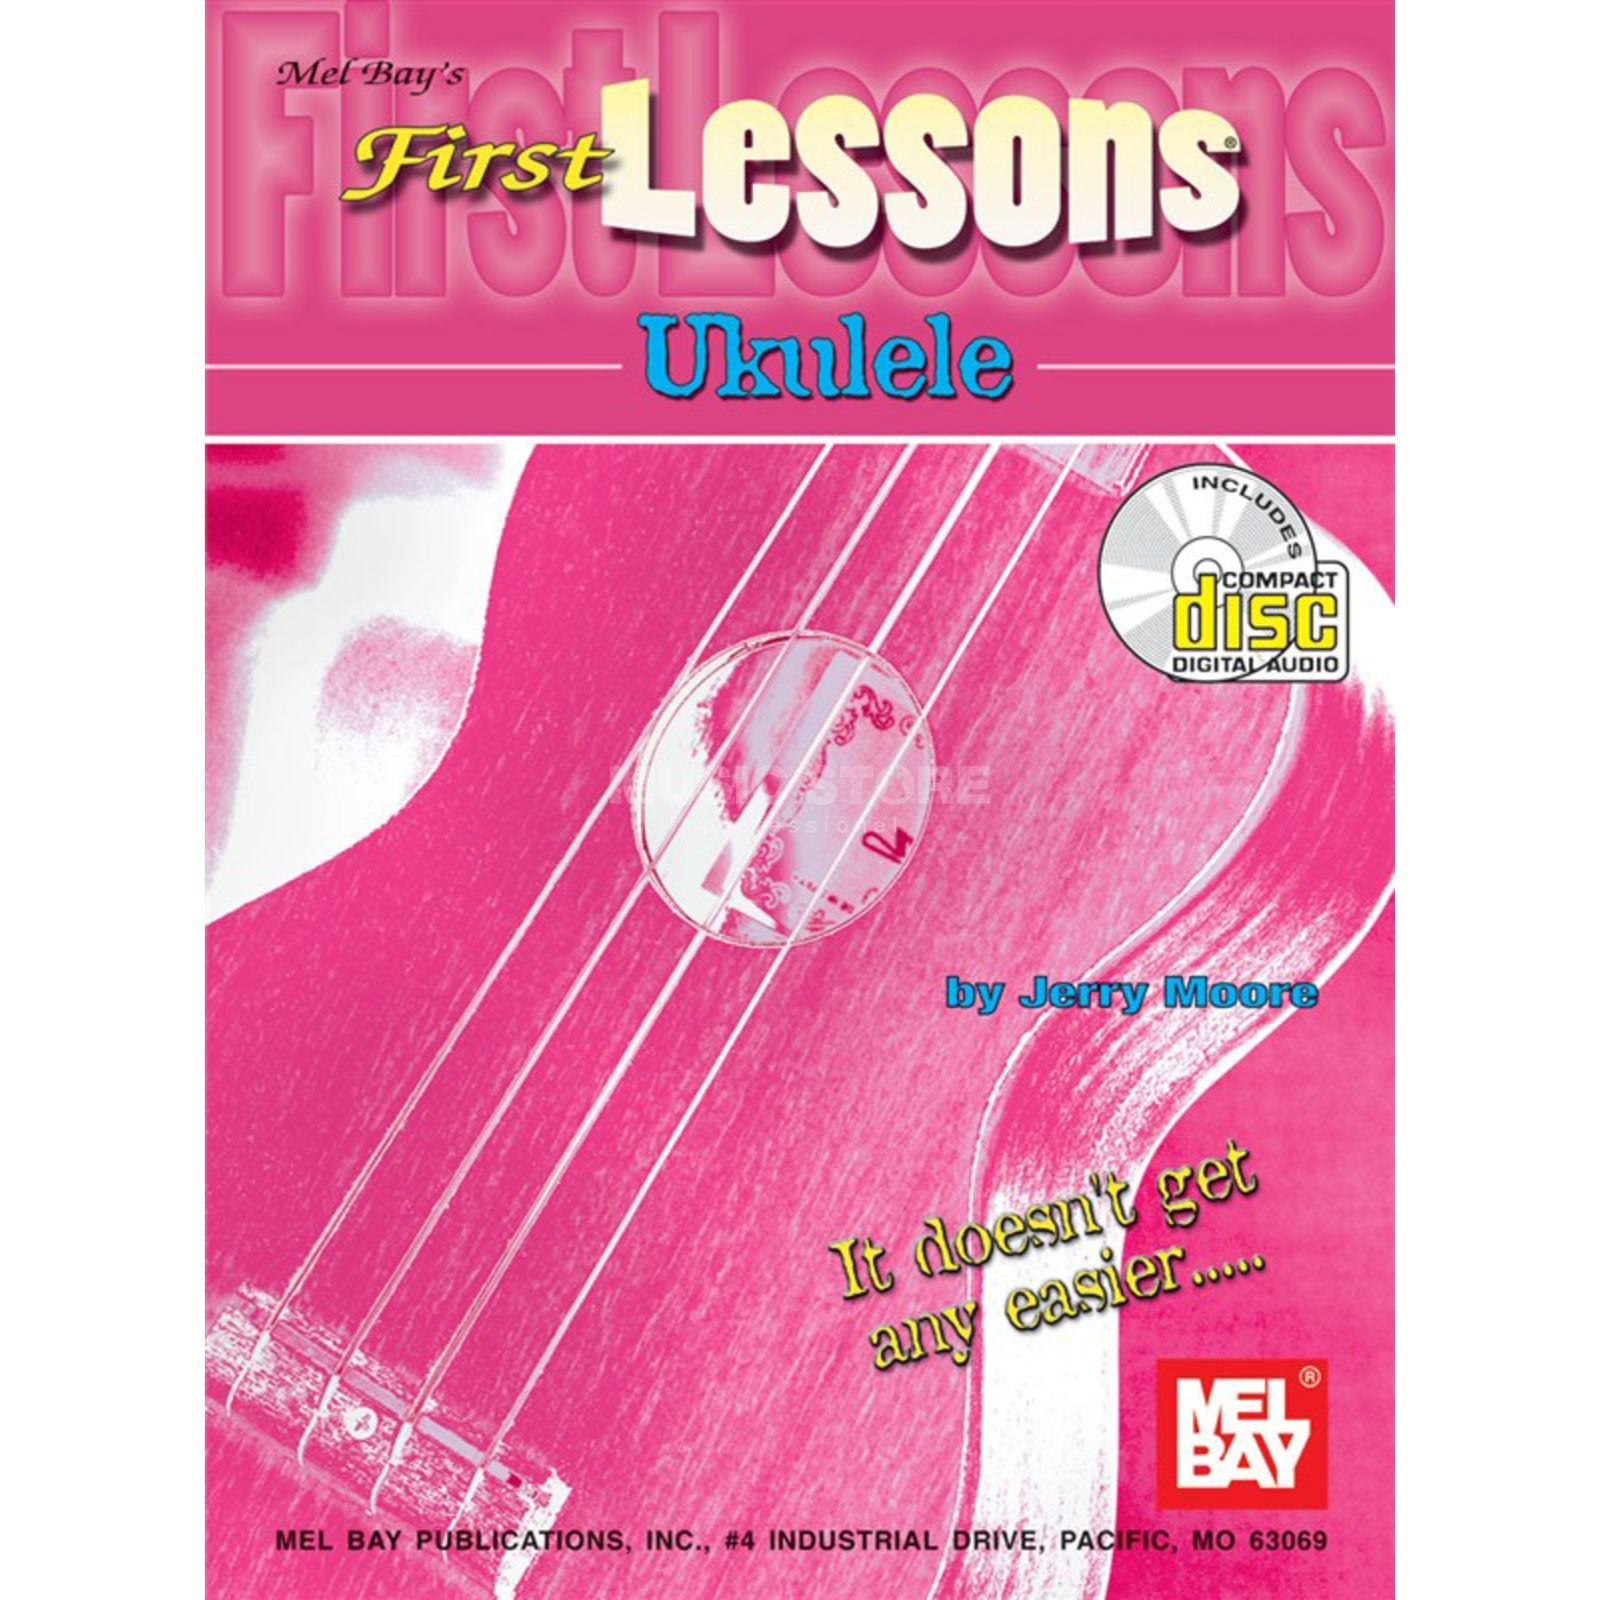 Mel Bay Publications First Lessons Ukulele Jerry Moore Produktbild